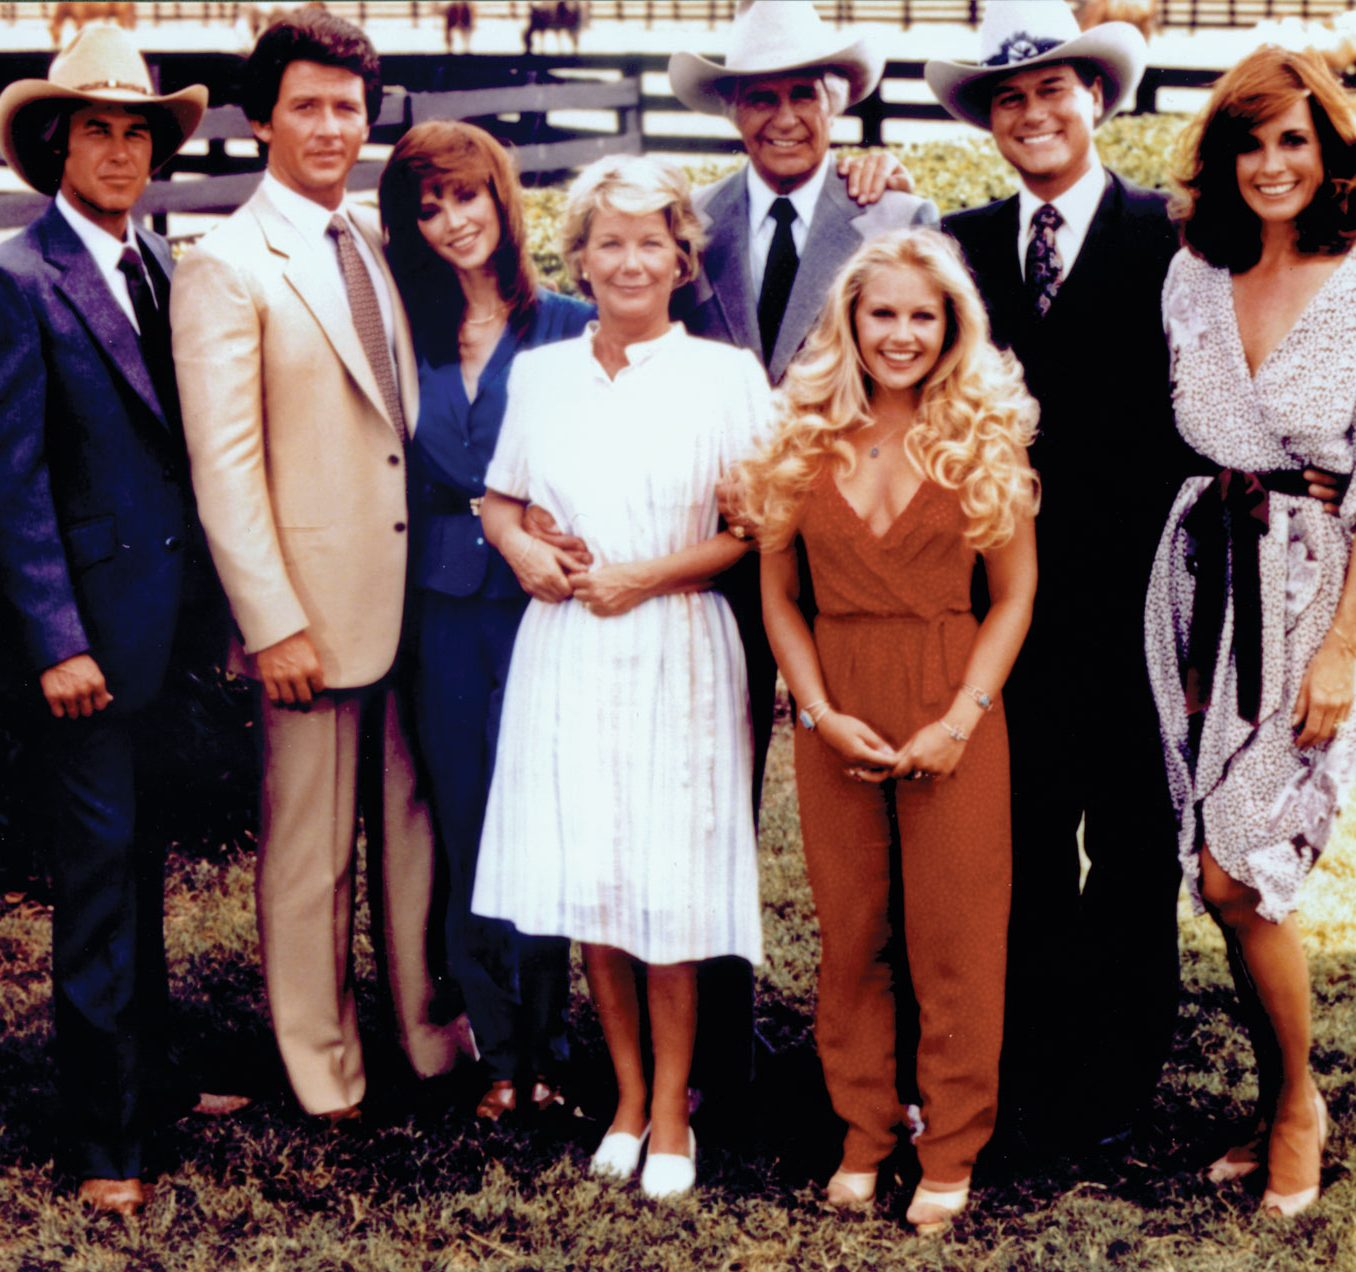 Steve Kanaly Patrick Duffy Linda Gray Dallas e1608306793260 20 Things You Probably Didn't Know About Miami Vice